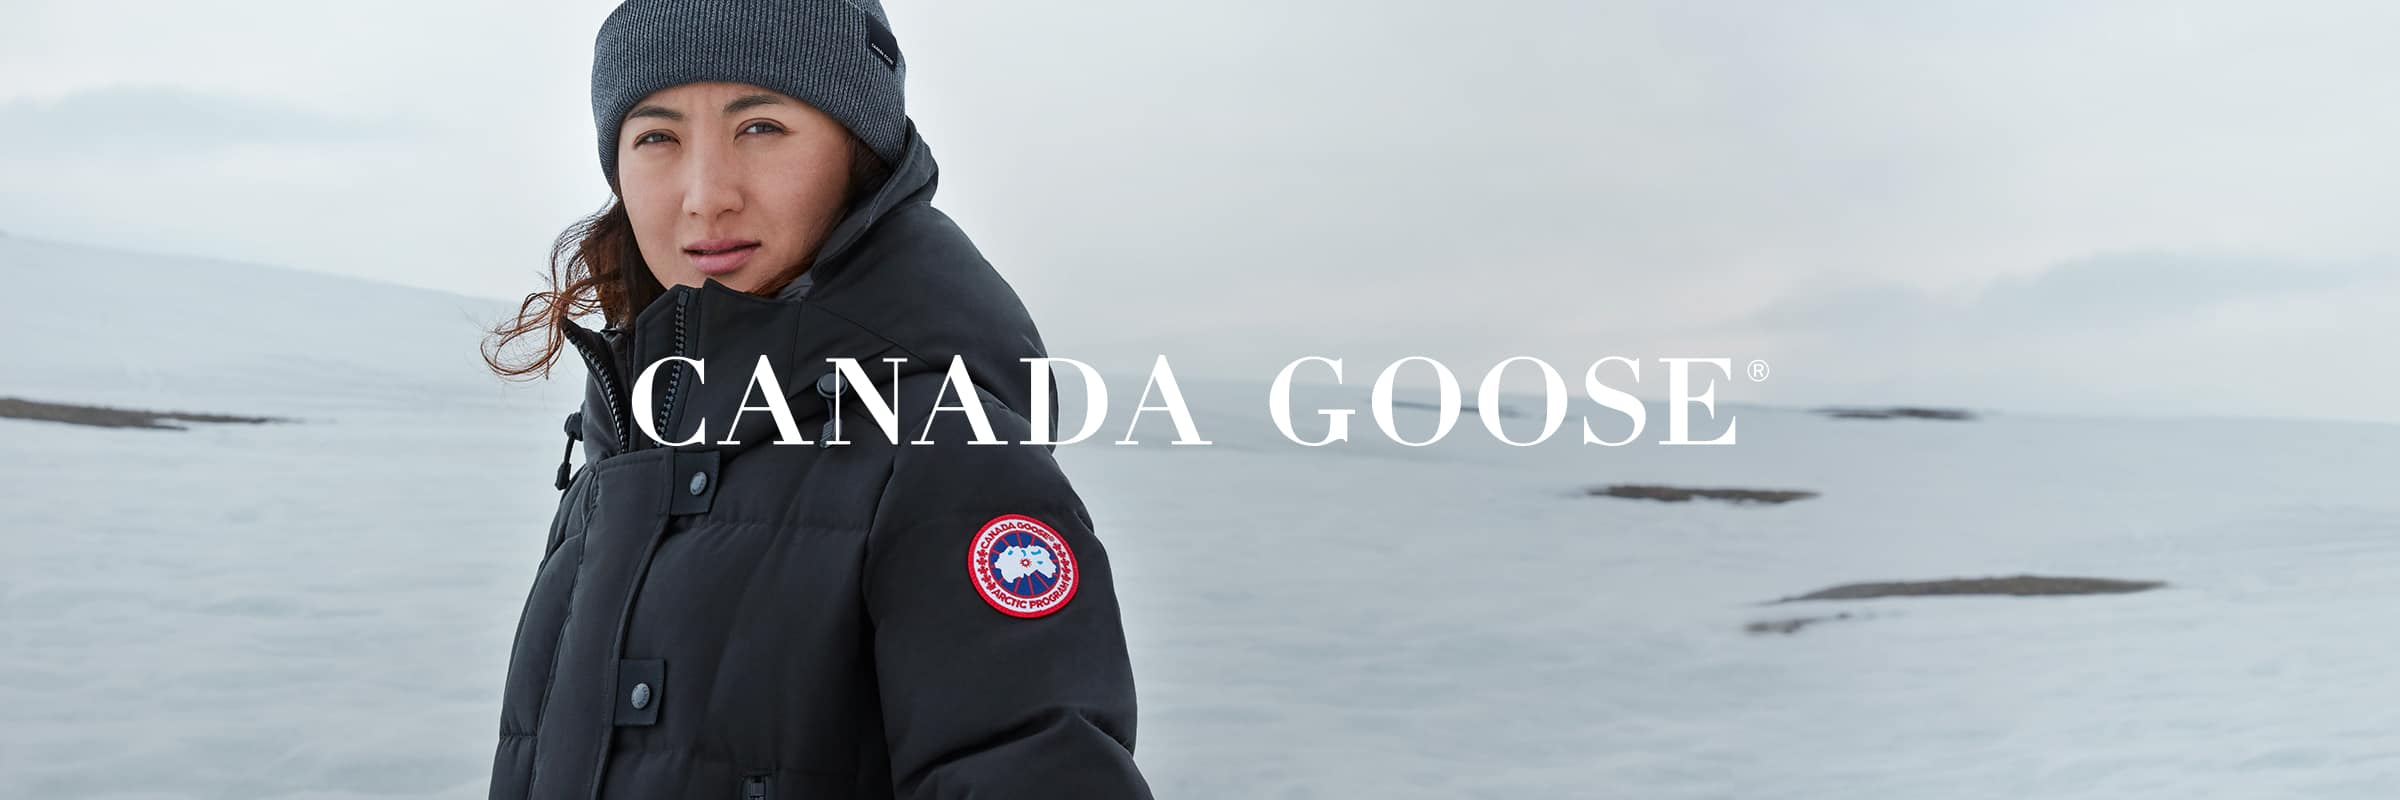 Best Canada Goose Parkas for Winter 2021